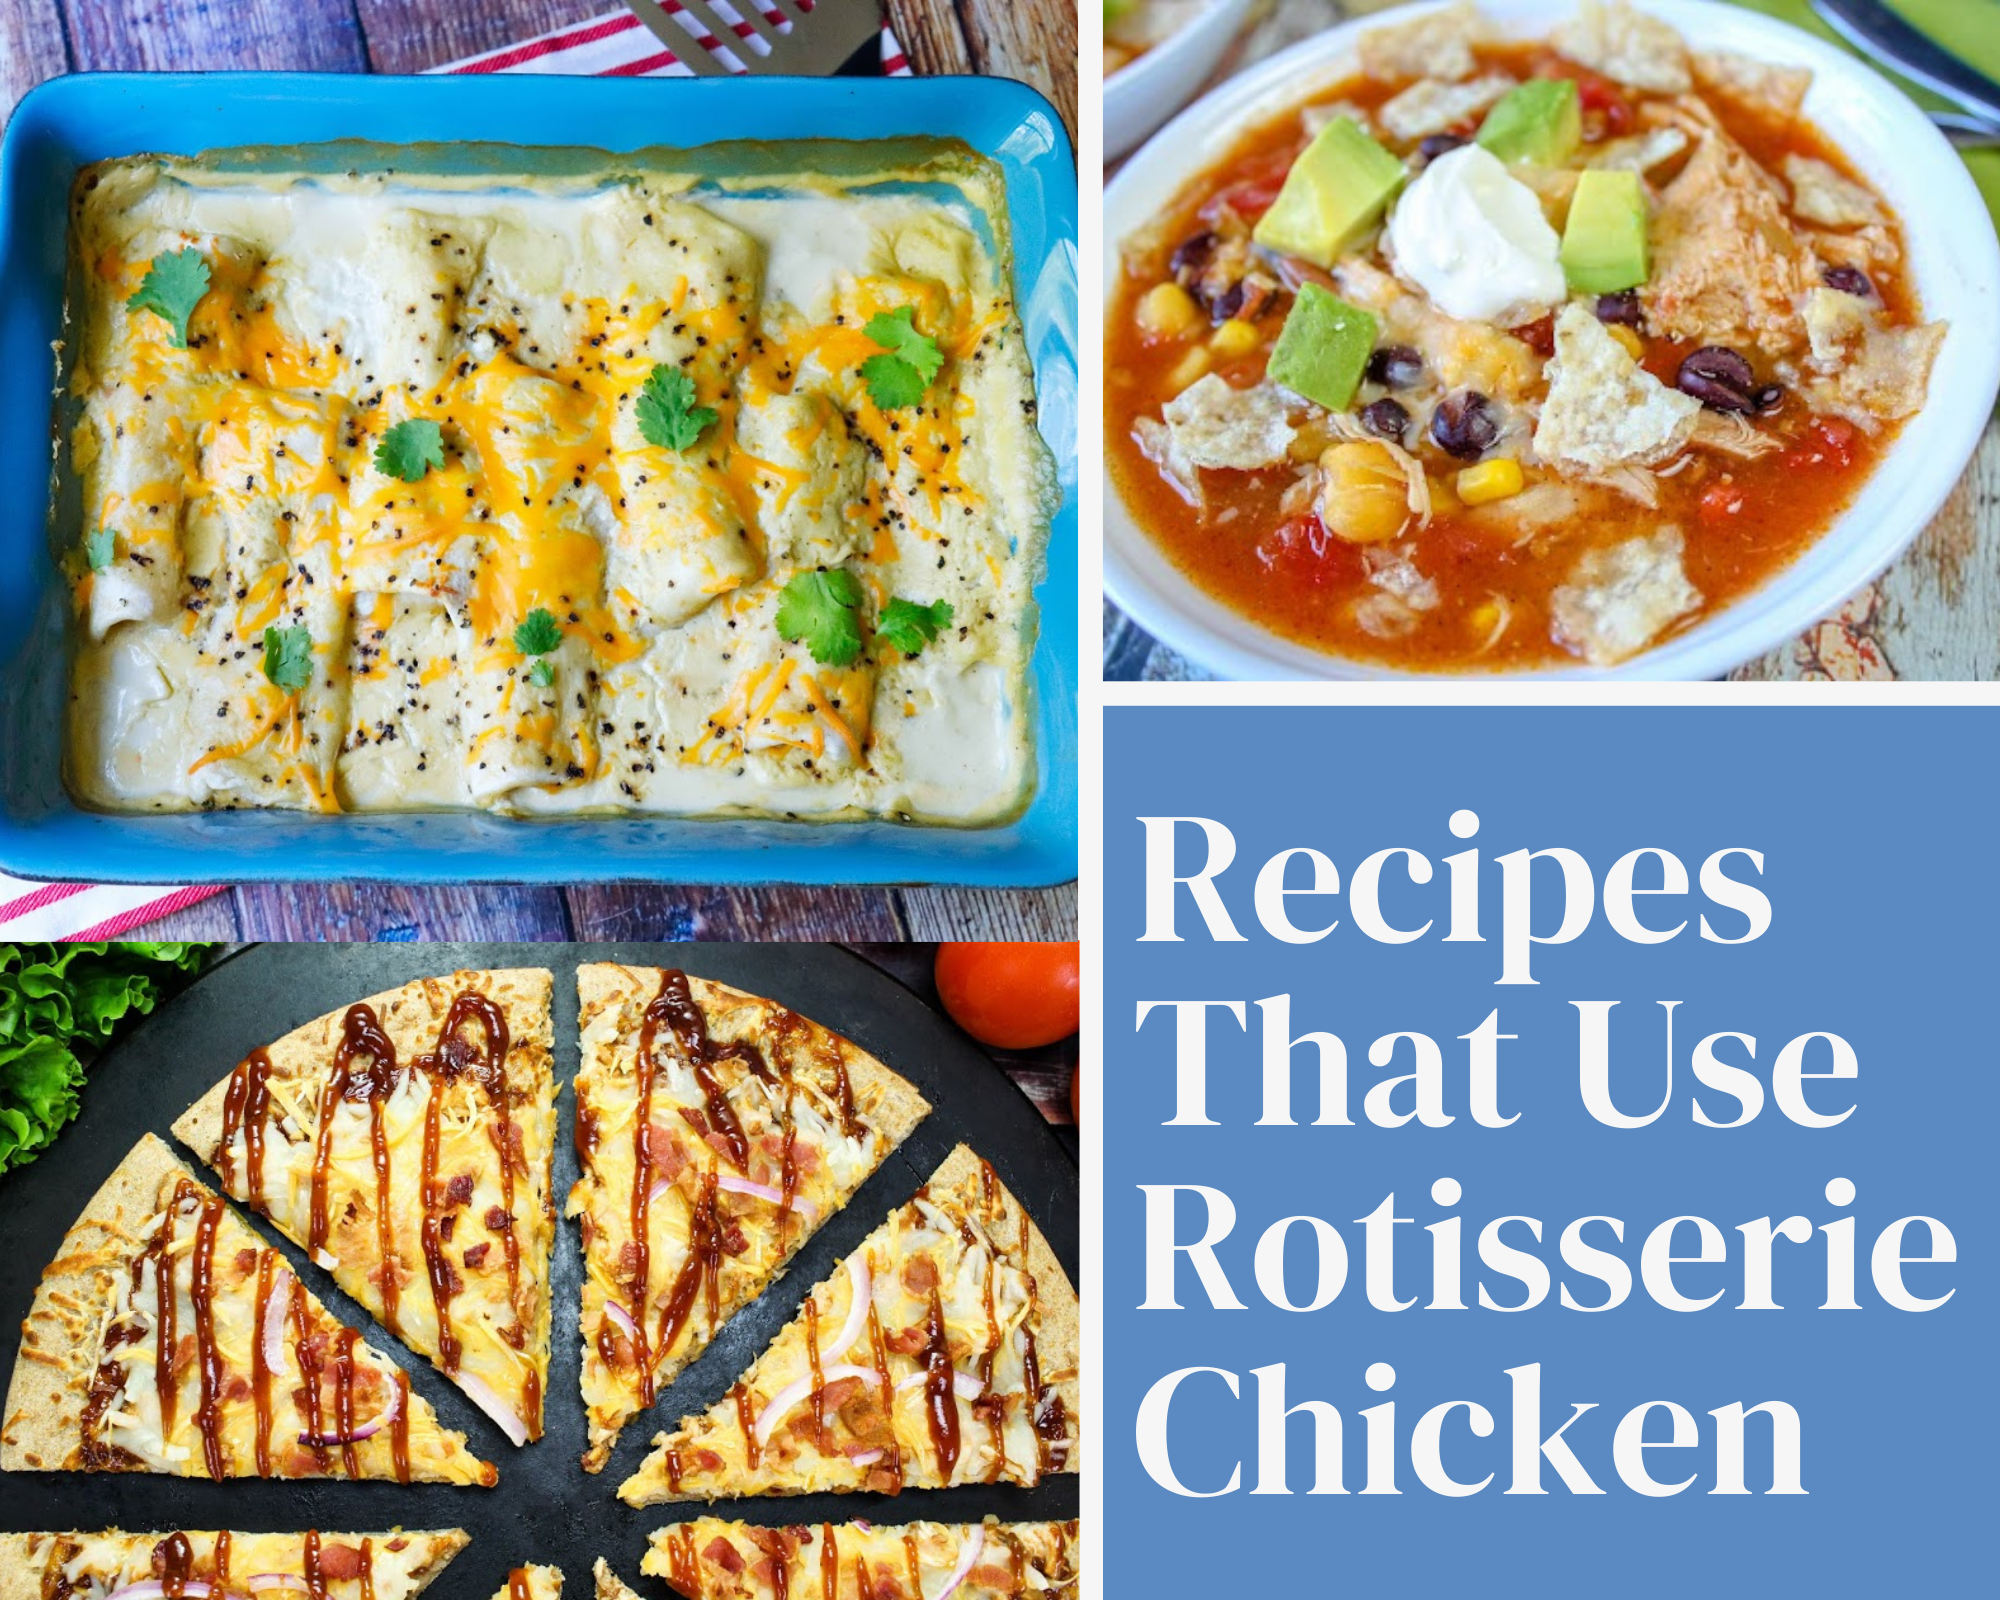 Recipes That Use Rotisserie Chicken